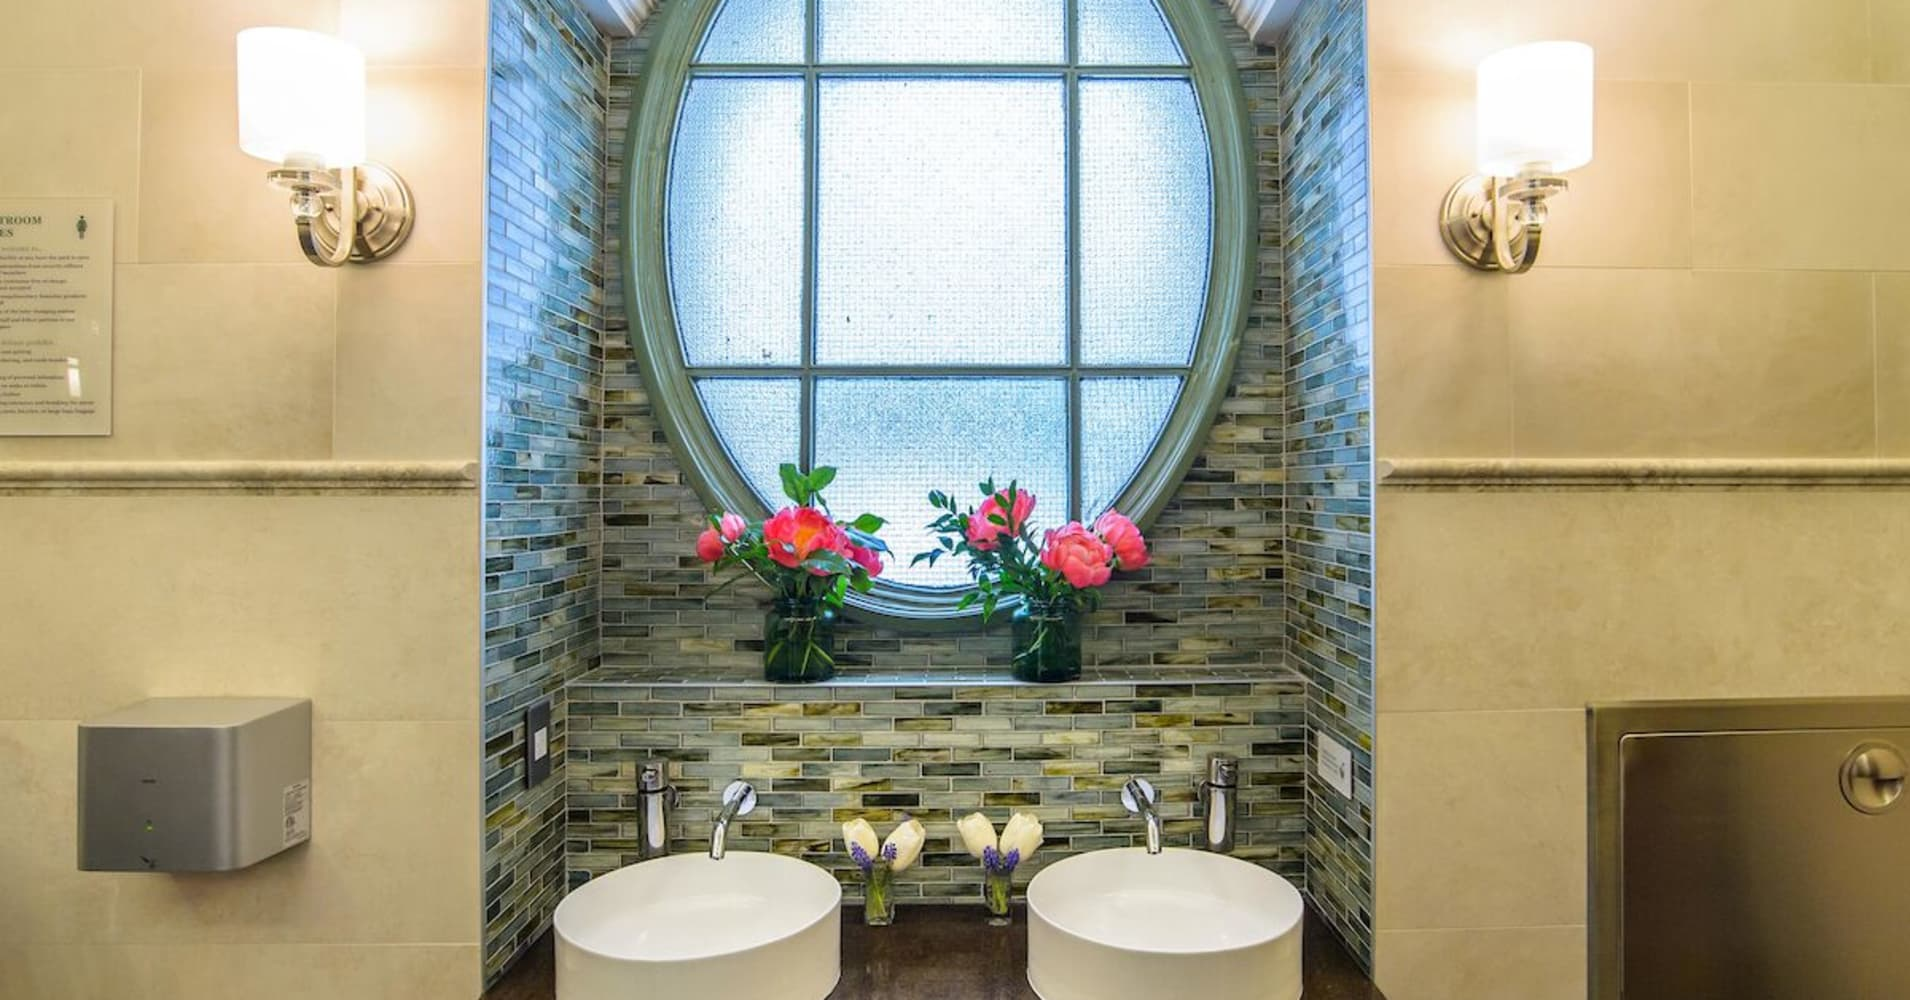 The 10 places vying to become the best restroom in the US